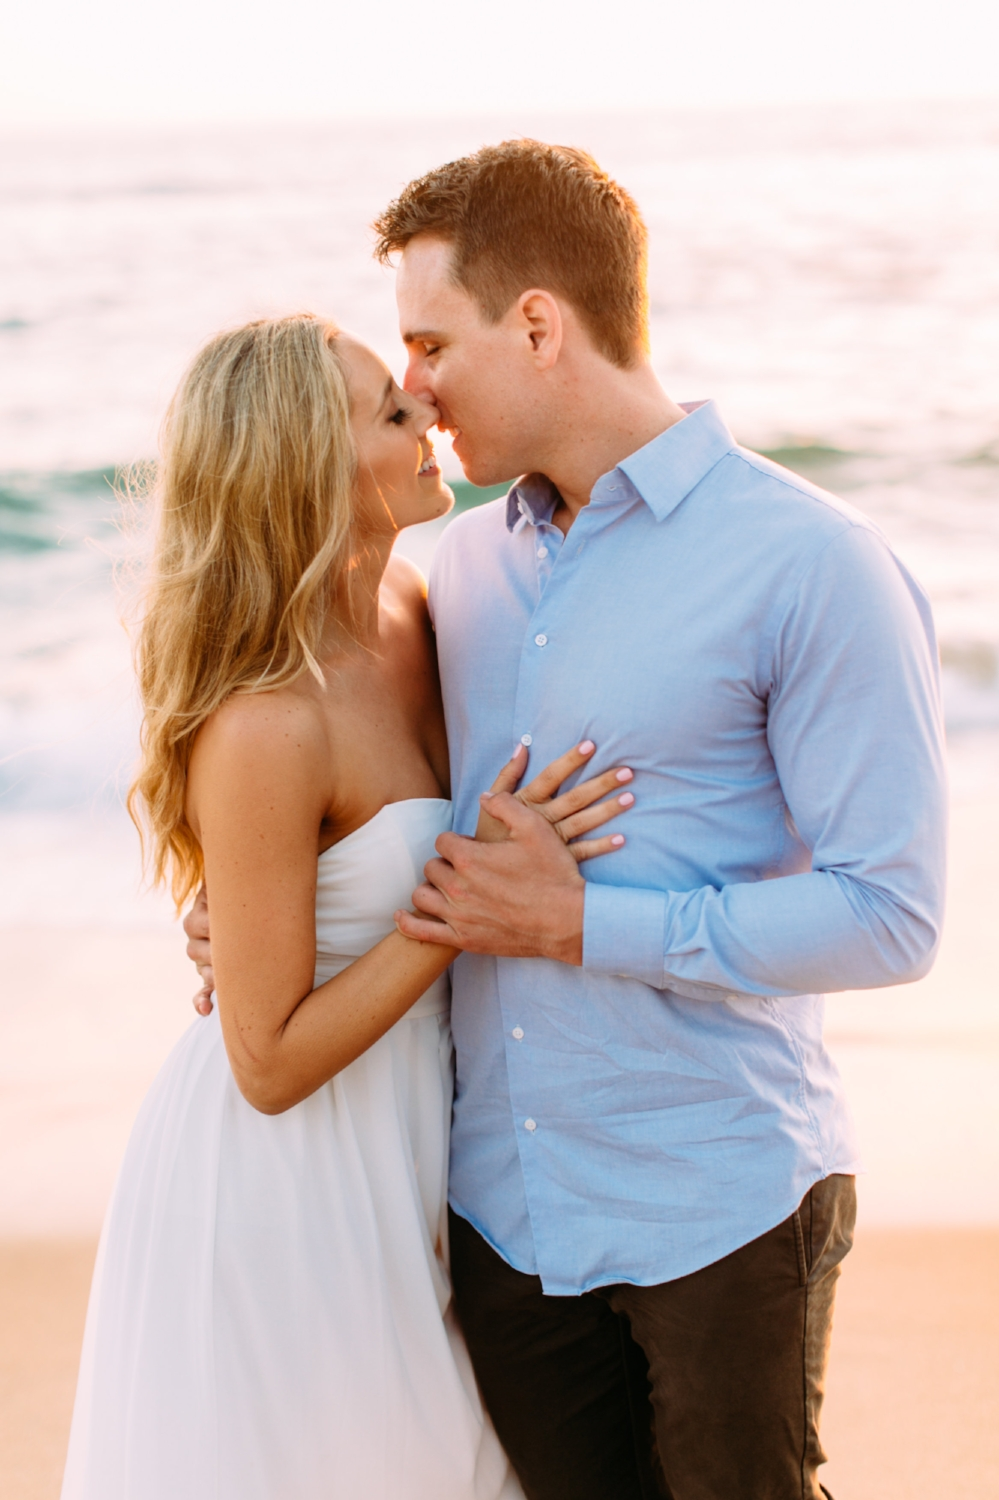 Engagement Photos Kissing Poses at Beach. Hair and Makeup done by Vanity Belle in Orange County (Costa Mesa) and San Diego (La Jolla).